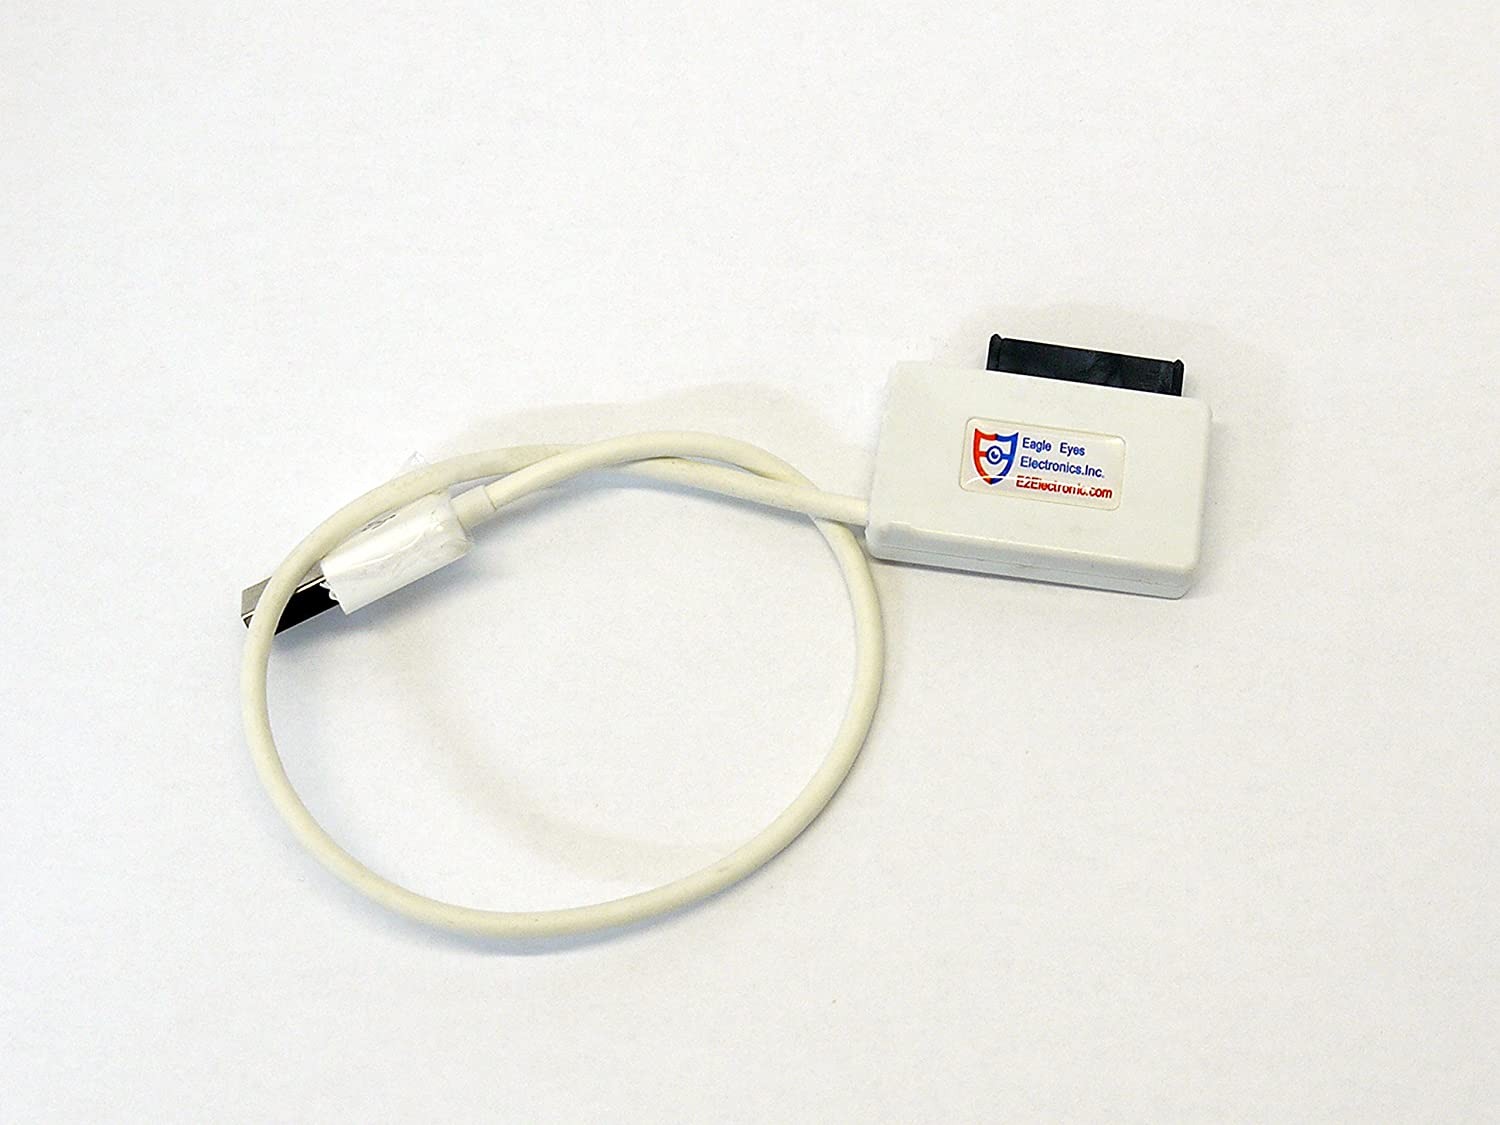 Eagle Eyes White Usb 20 To 7 6 13pin Slimline Sata Ata Connector Pin Power Cable Laptop Cd Dvd Rom Optical Super Drive Adapter Computers Accessories